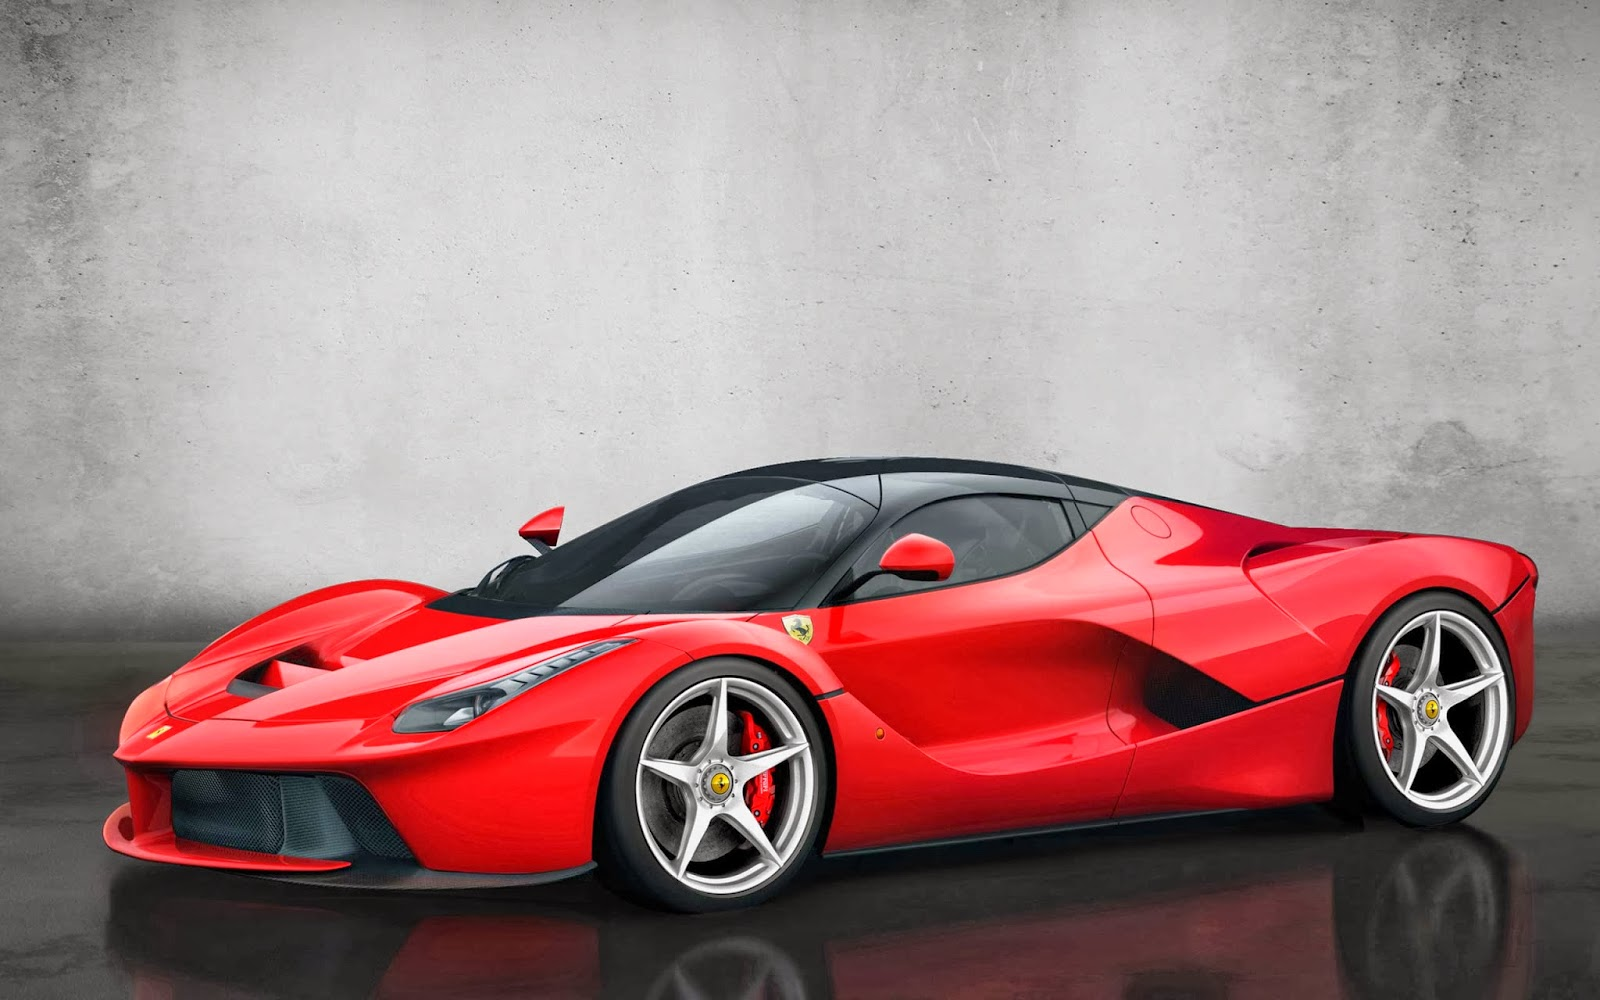 Laferrari Hybrid Voted Best Sports Car In Madrid